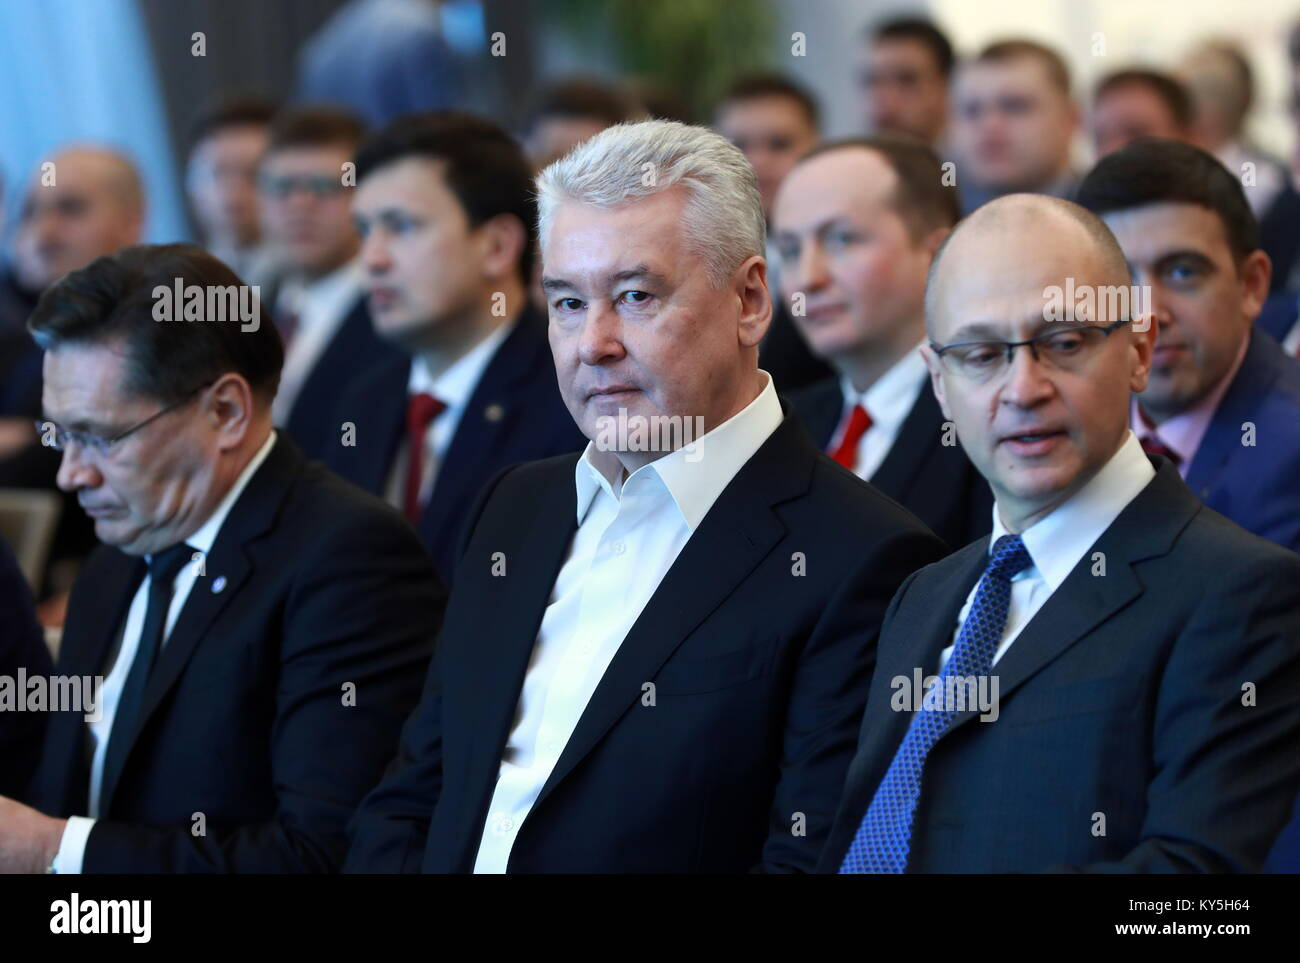 Moscow, Russia. 13th Jan, 2018. Rosatom State Corporation CEO Alexei Likhachev, Moscow Mayor Sergei Sobyanin, and - Stock Image